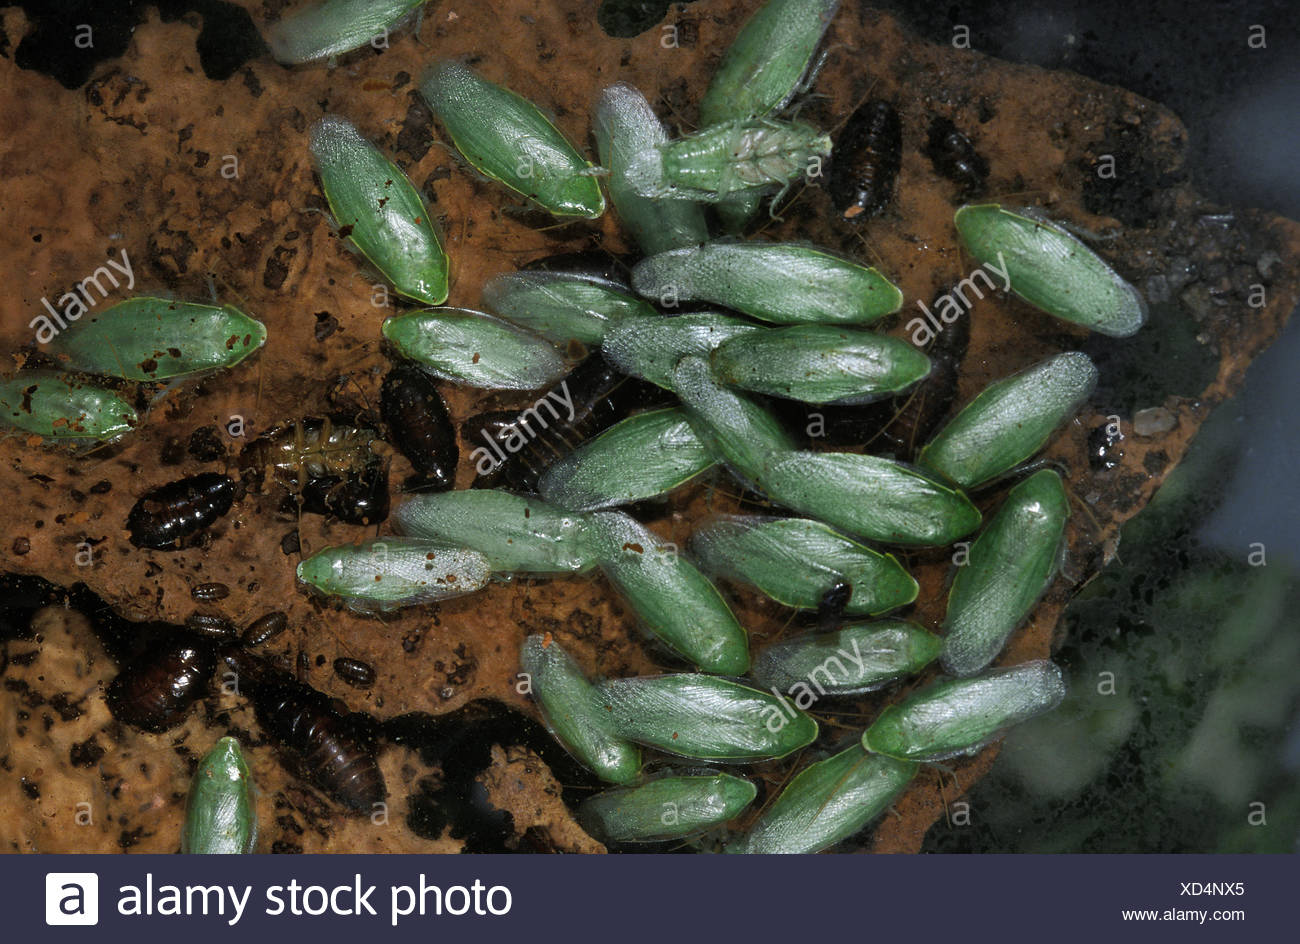 Green Banana Cockroach, panchlora nivea in South America - Stock Image